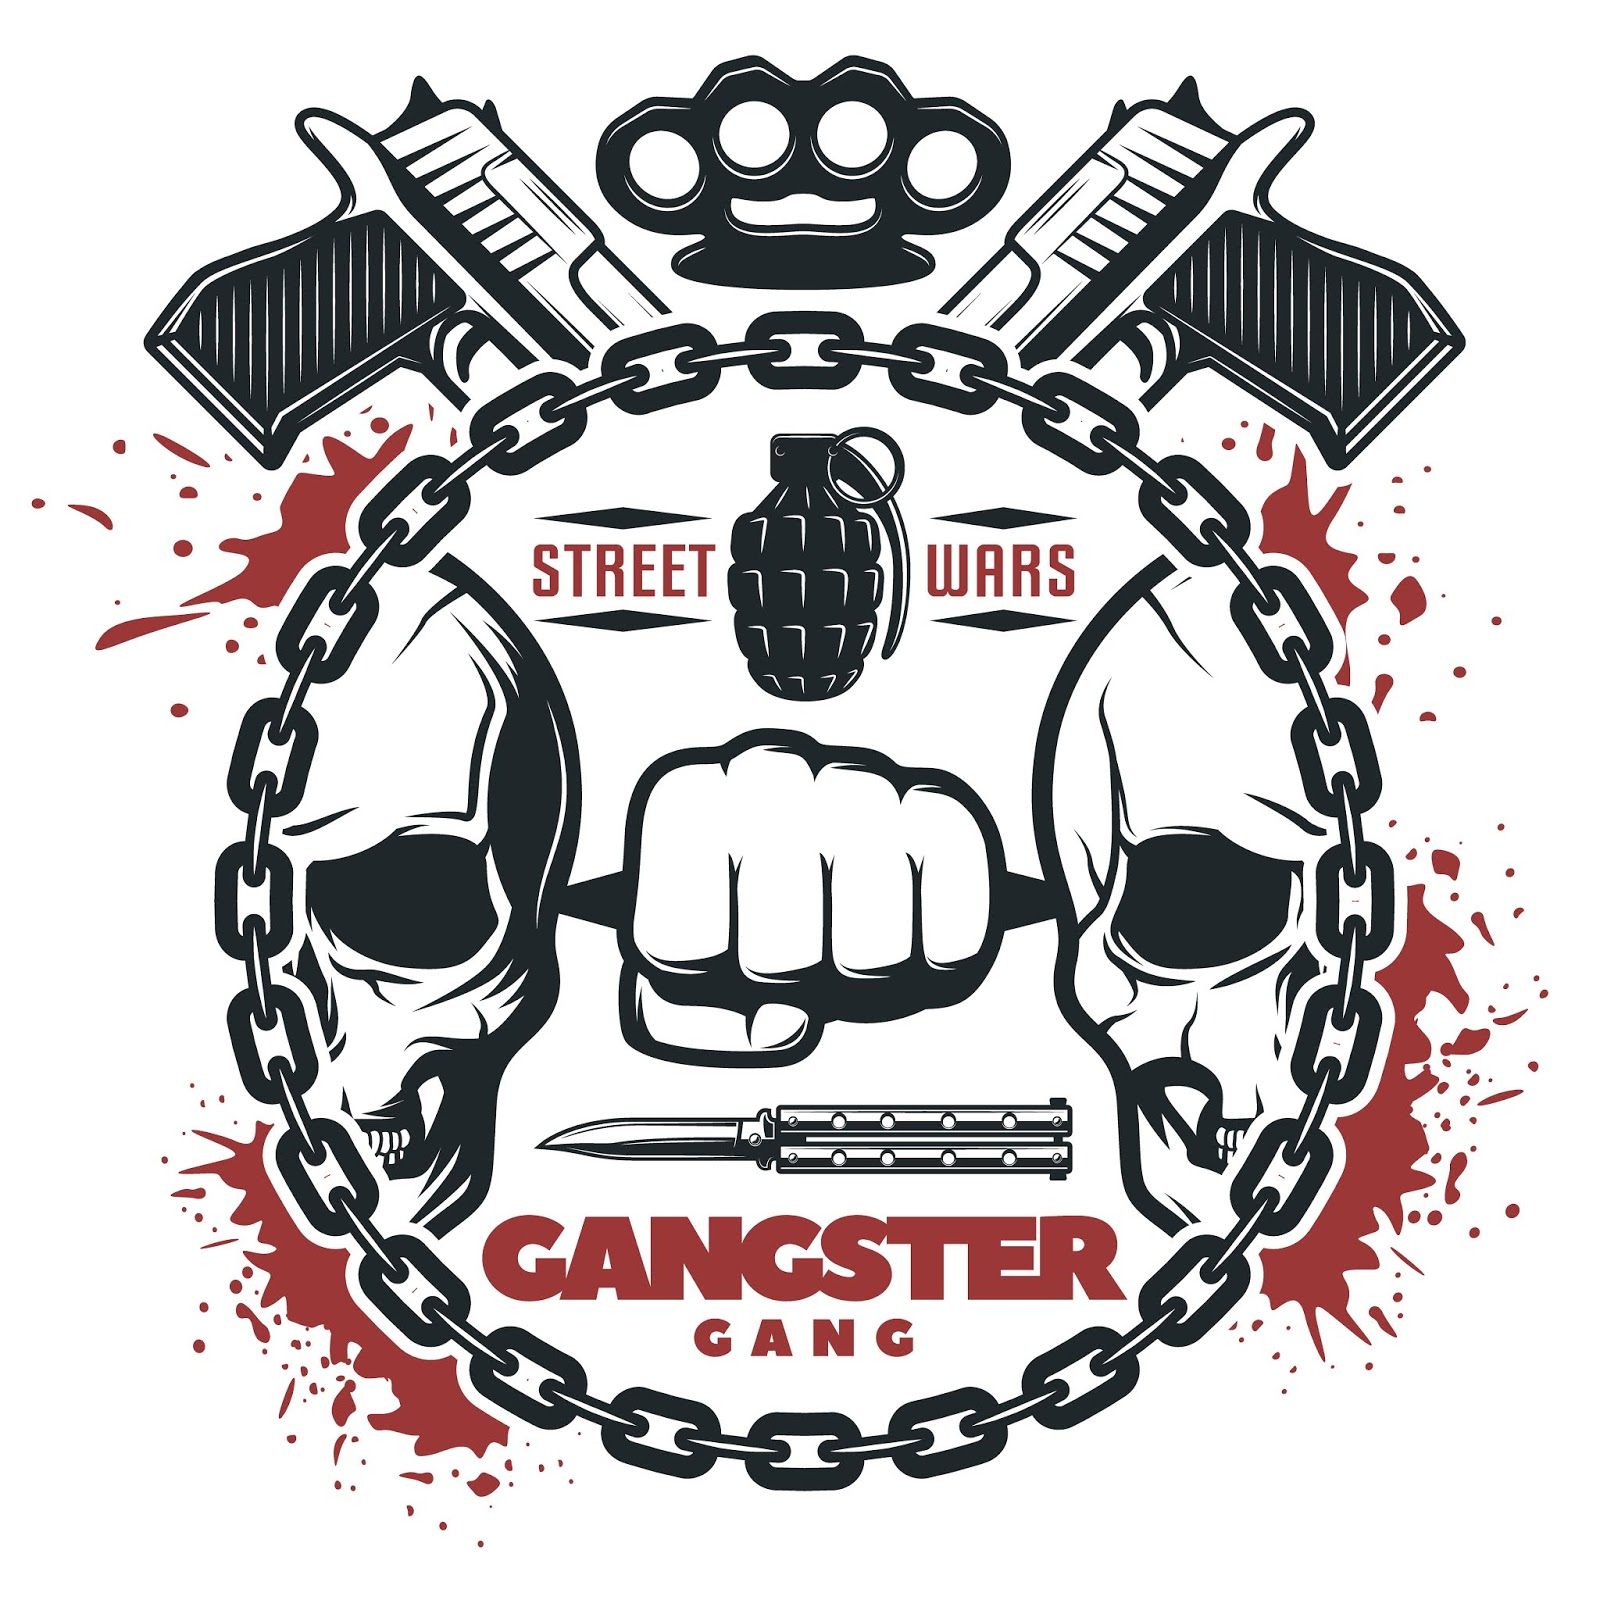 Street Gang Wars Print	 Free Download Vector CDR, AI, EPS and PNG Formats